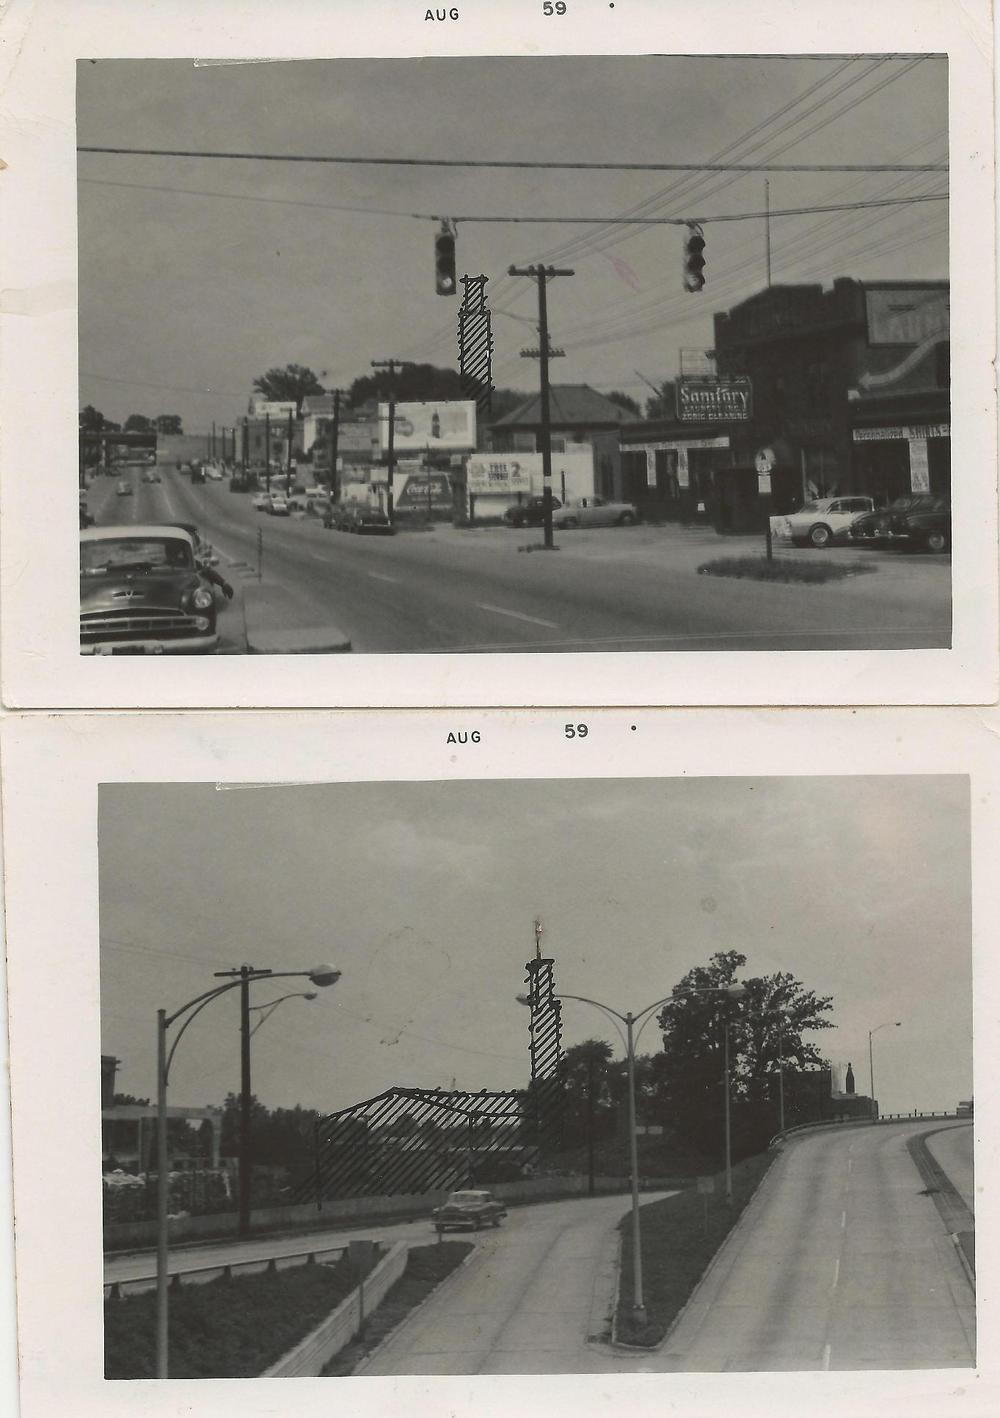 PMBC+Aug+1959+South+Blvd+north+and+south.jpg